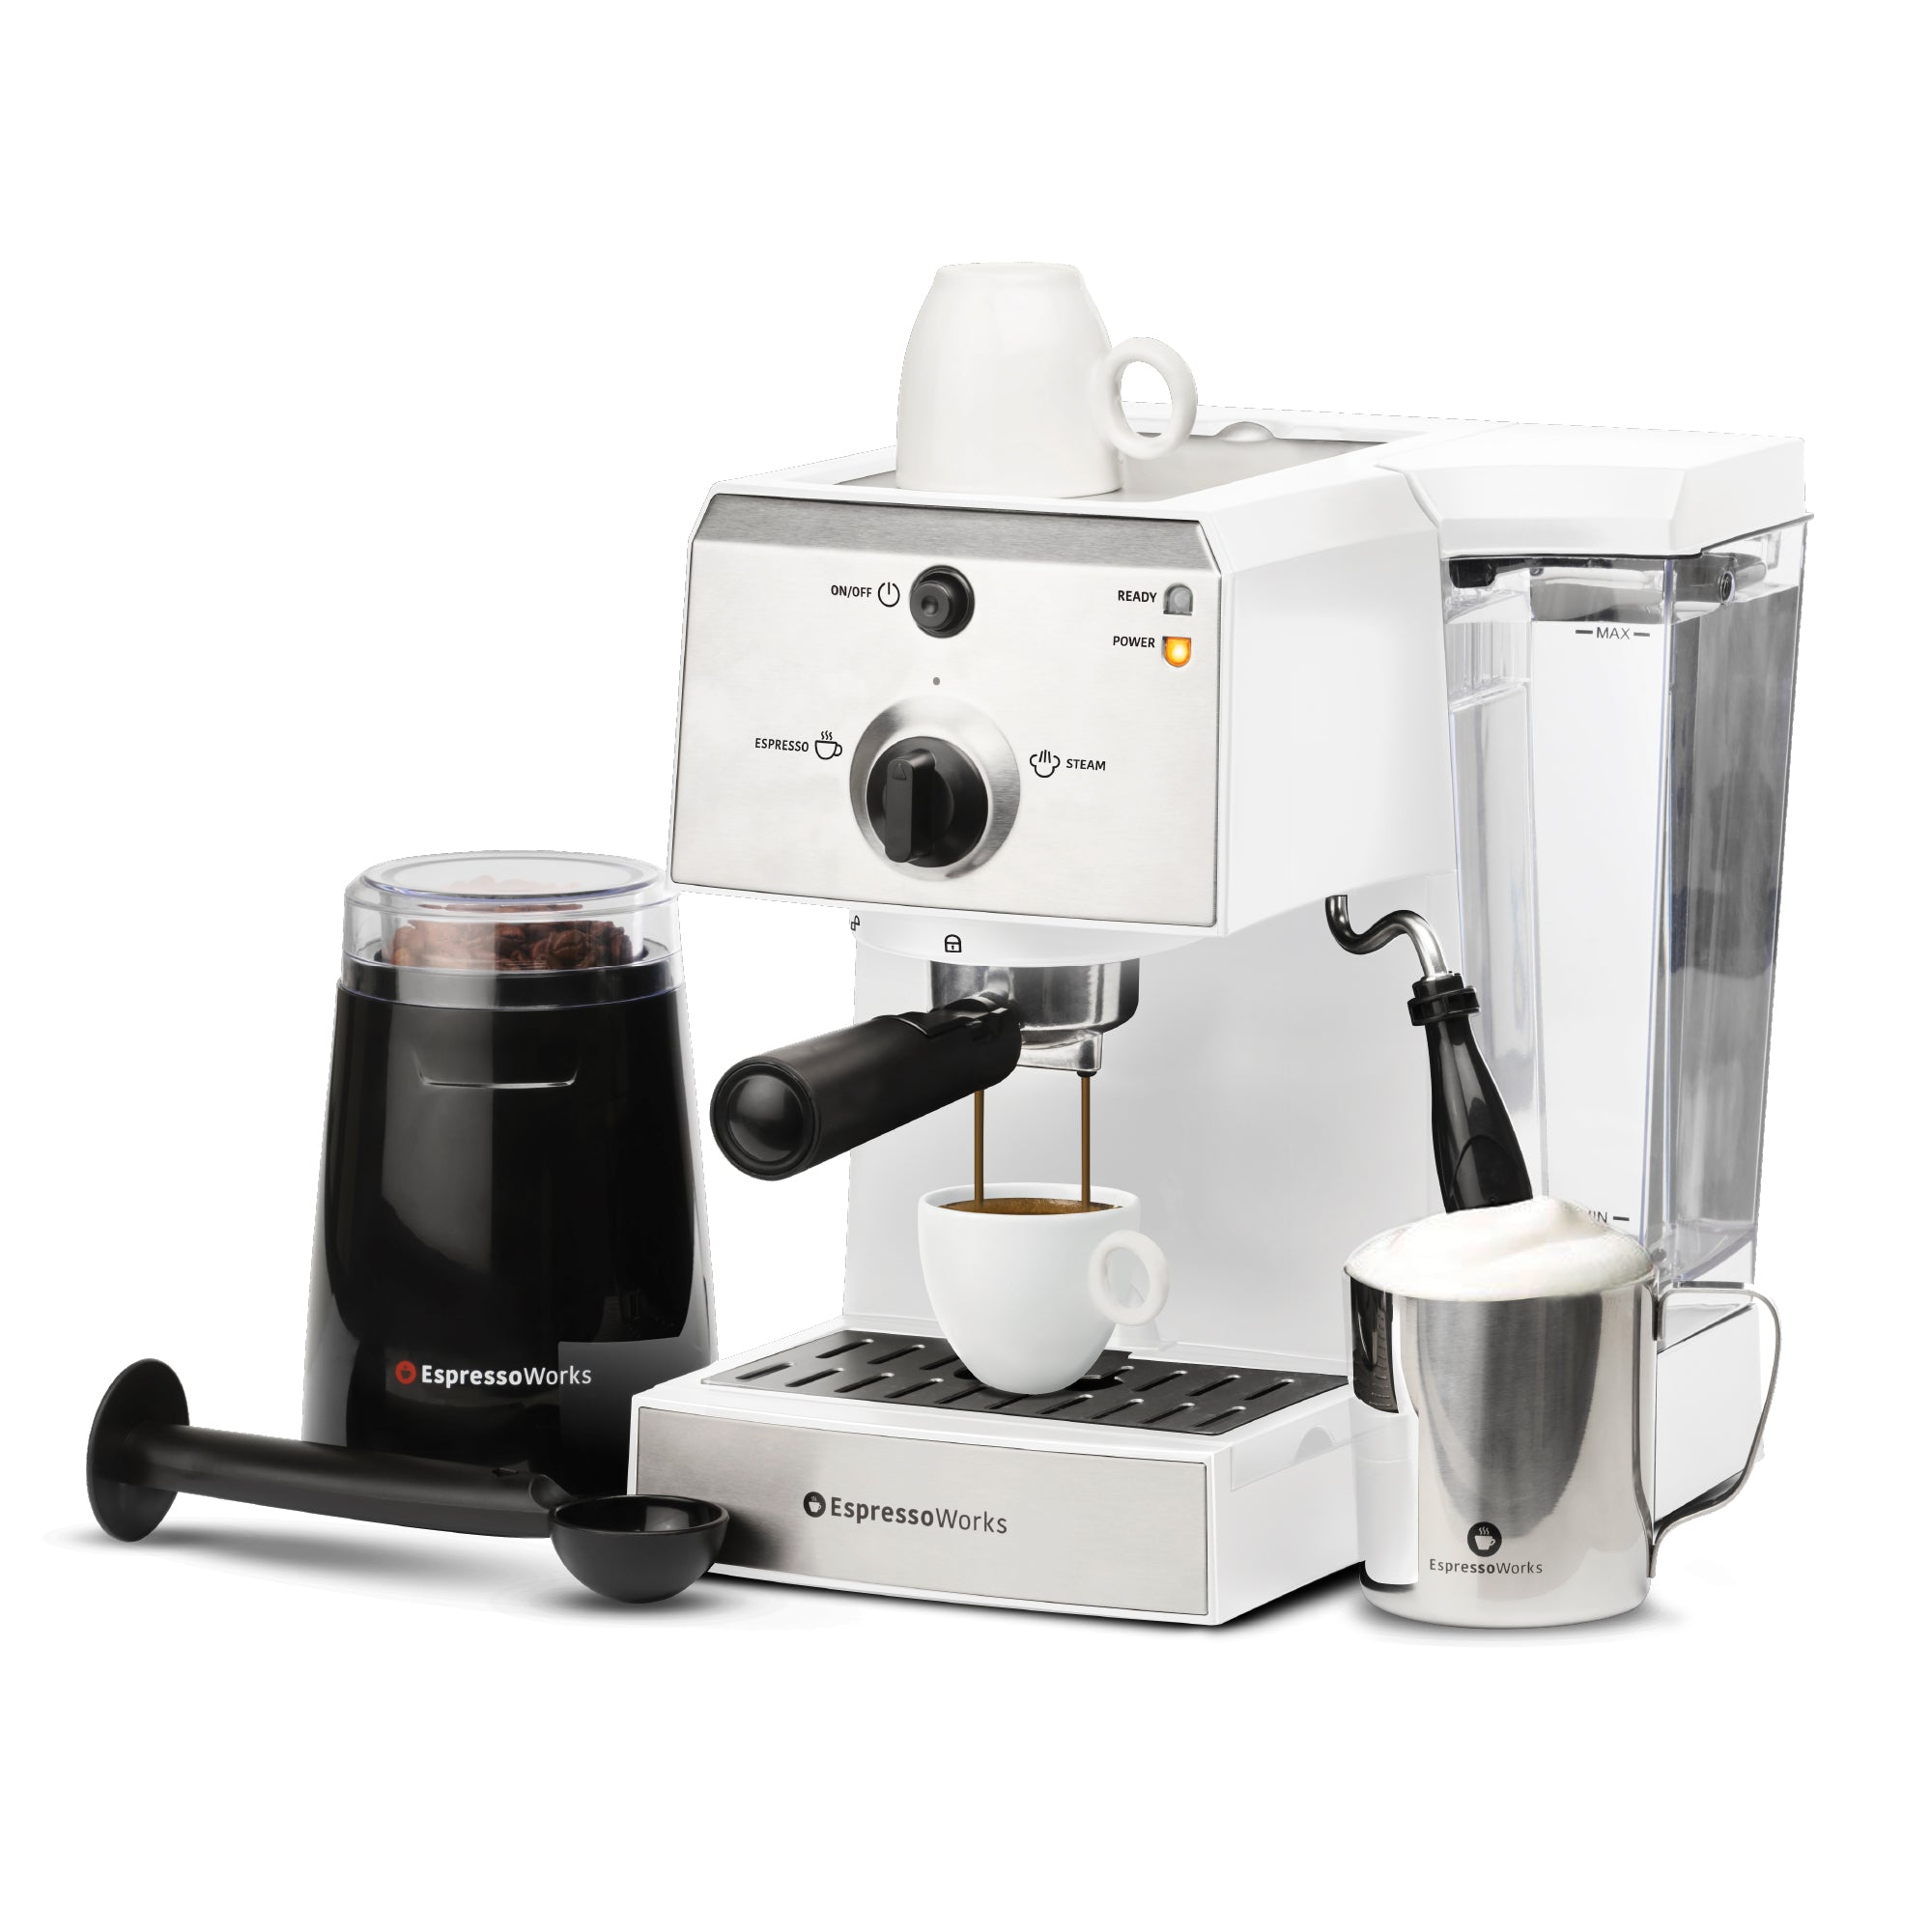 7-piece 15-bar EspressoWorks Espresso Machine Set White brewing an espresso